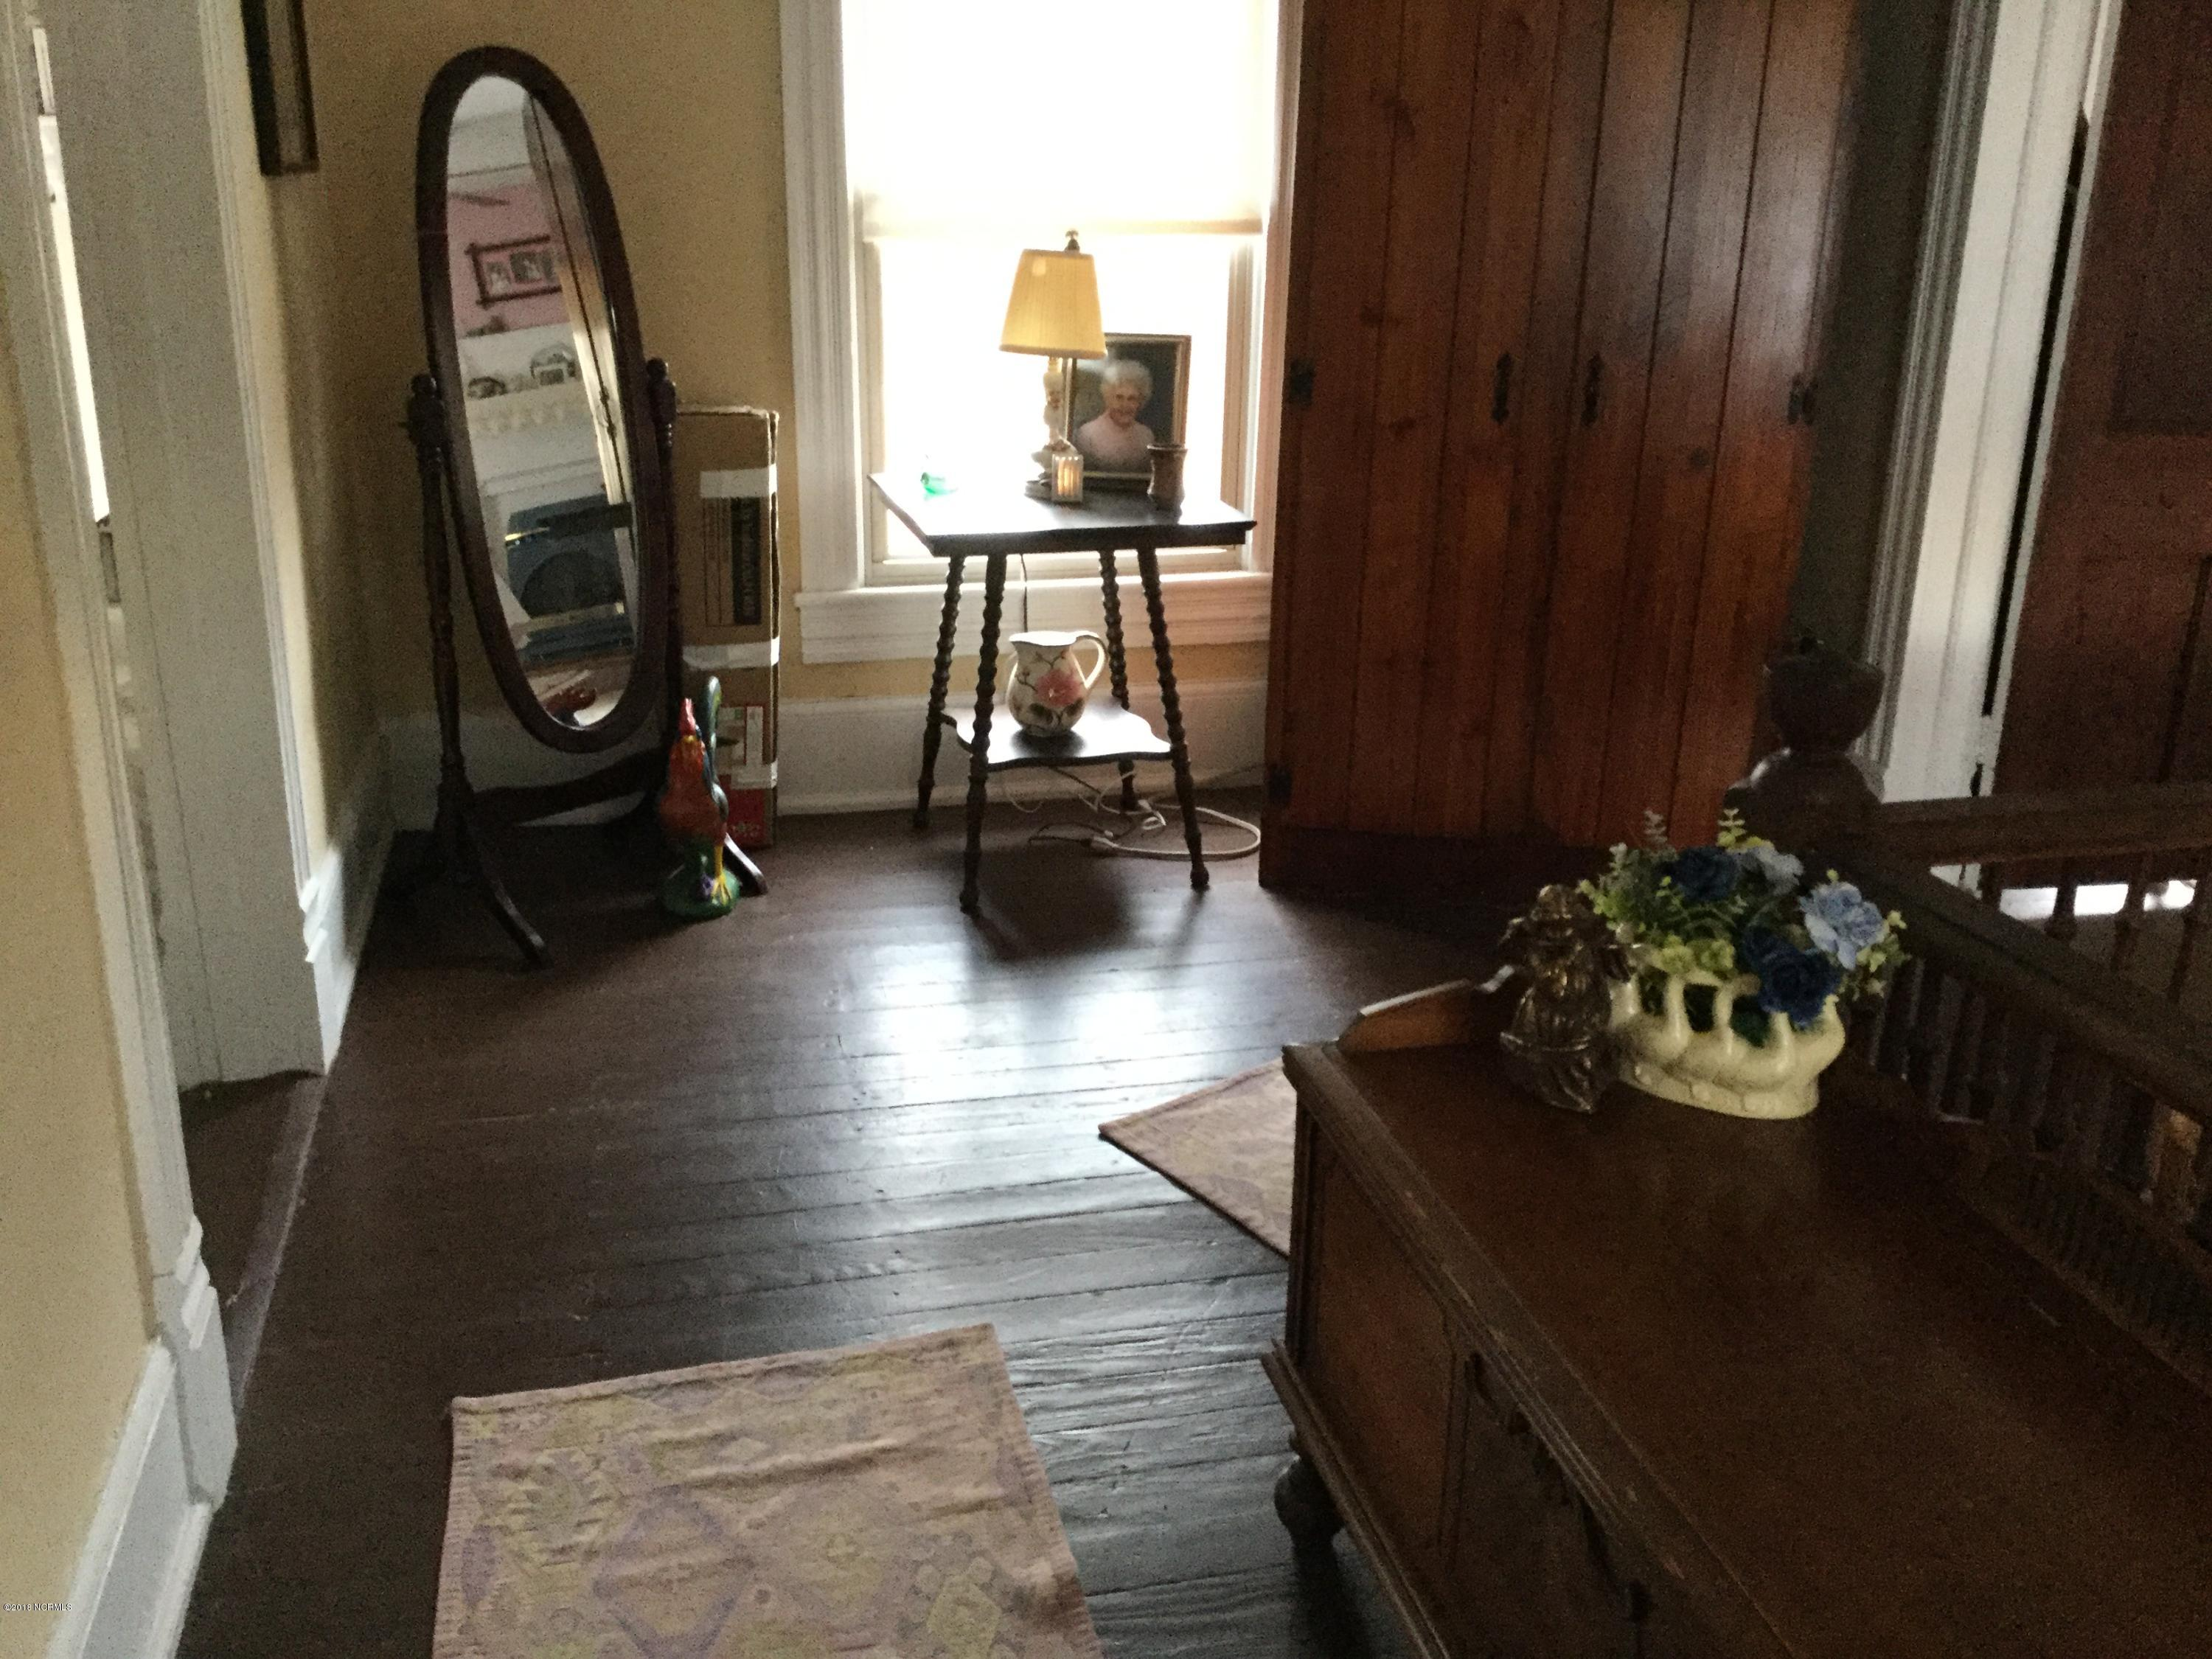 525 A Street, New Bern, North Carolina, 4 Bedrooms Bedrooms, 10 Rooms Rooms,2 BathroomsBathrooms,Single family residence,For sale,A,100105474